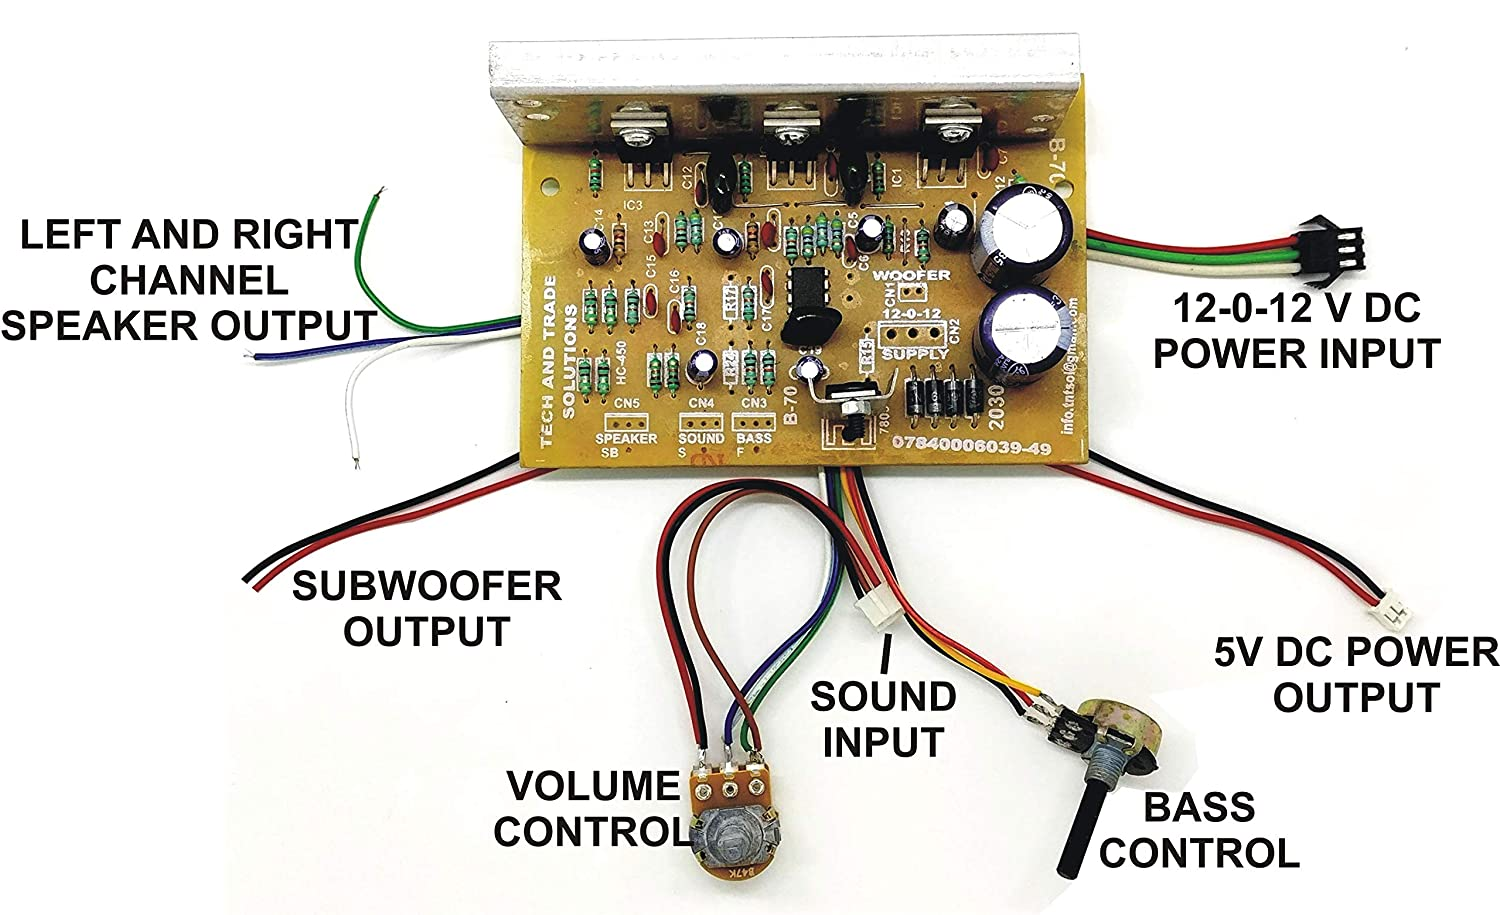 Small Subwoofer Home Theater Circuit Assembly Wiring Diagram from images-na.ssl-images-amazon.com